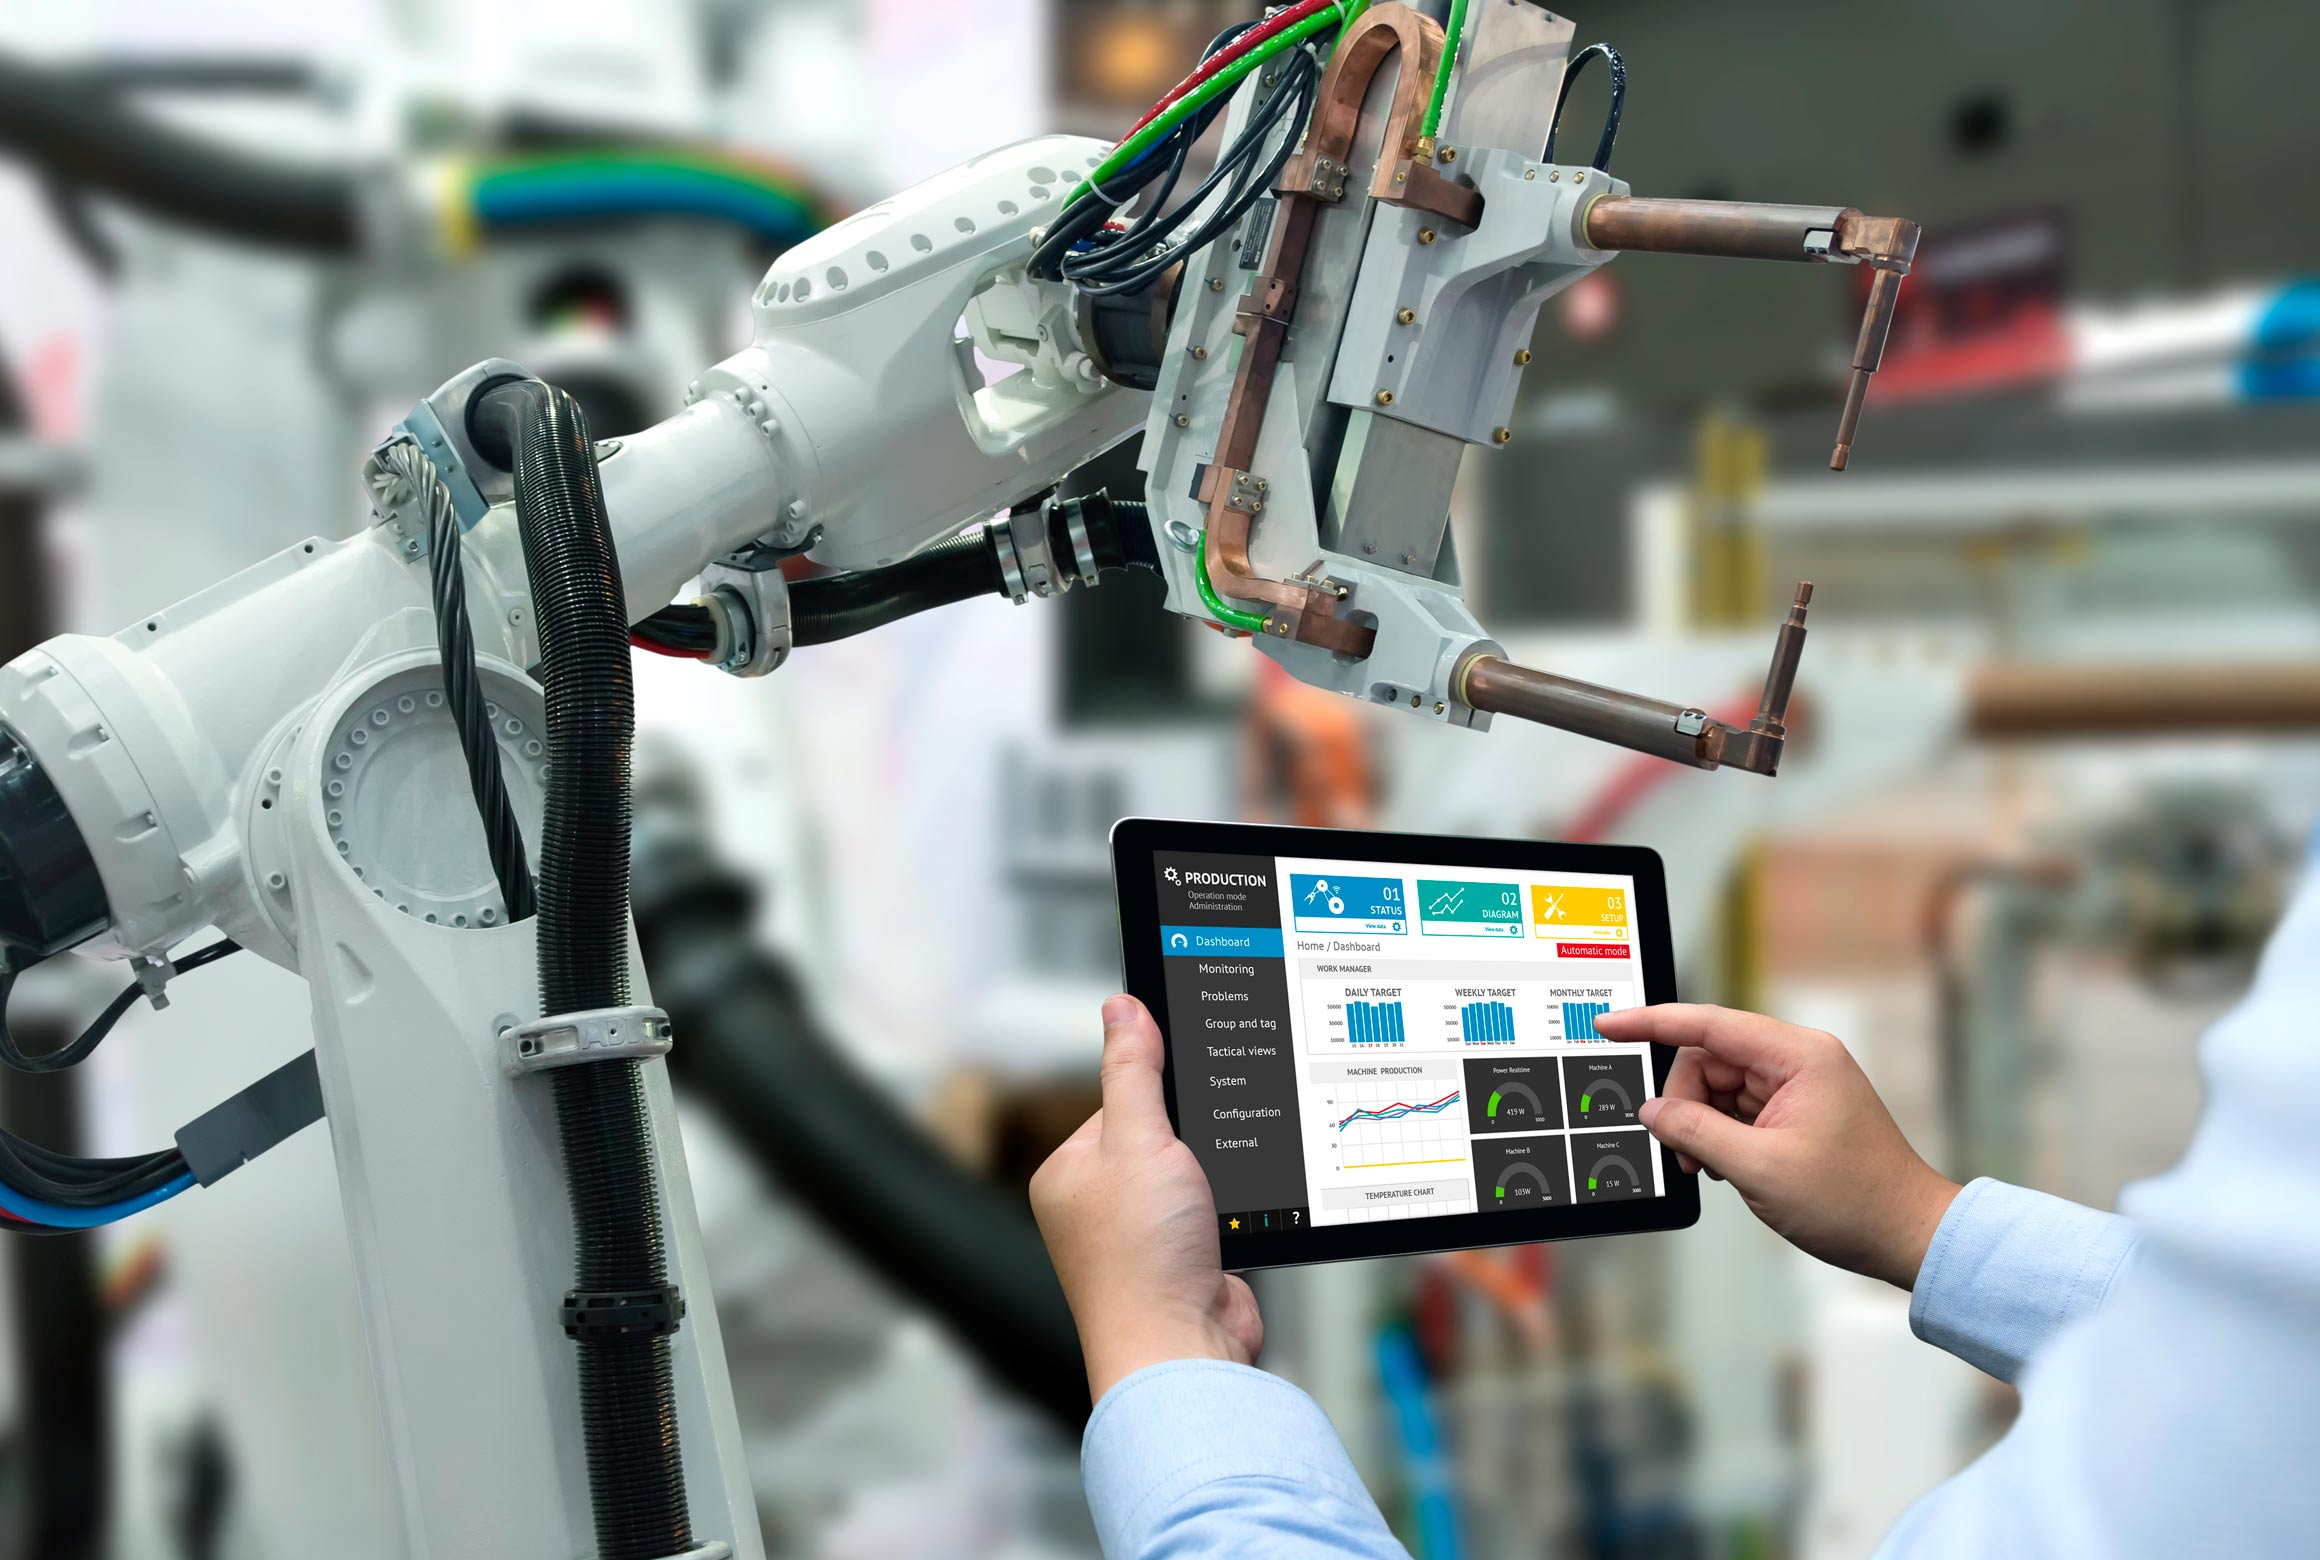 robotic arm being programmed from tablet